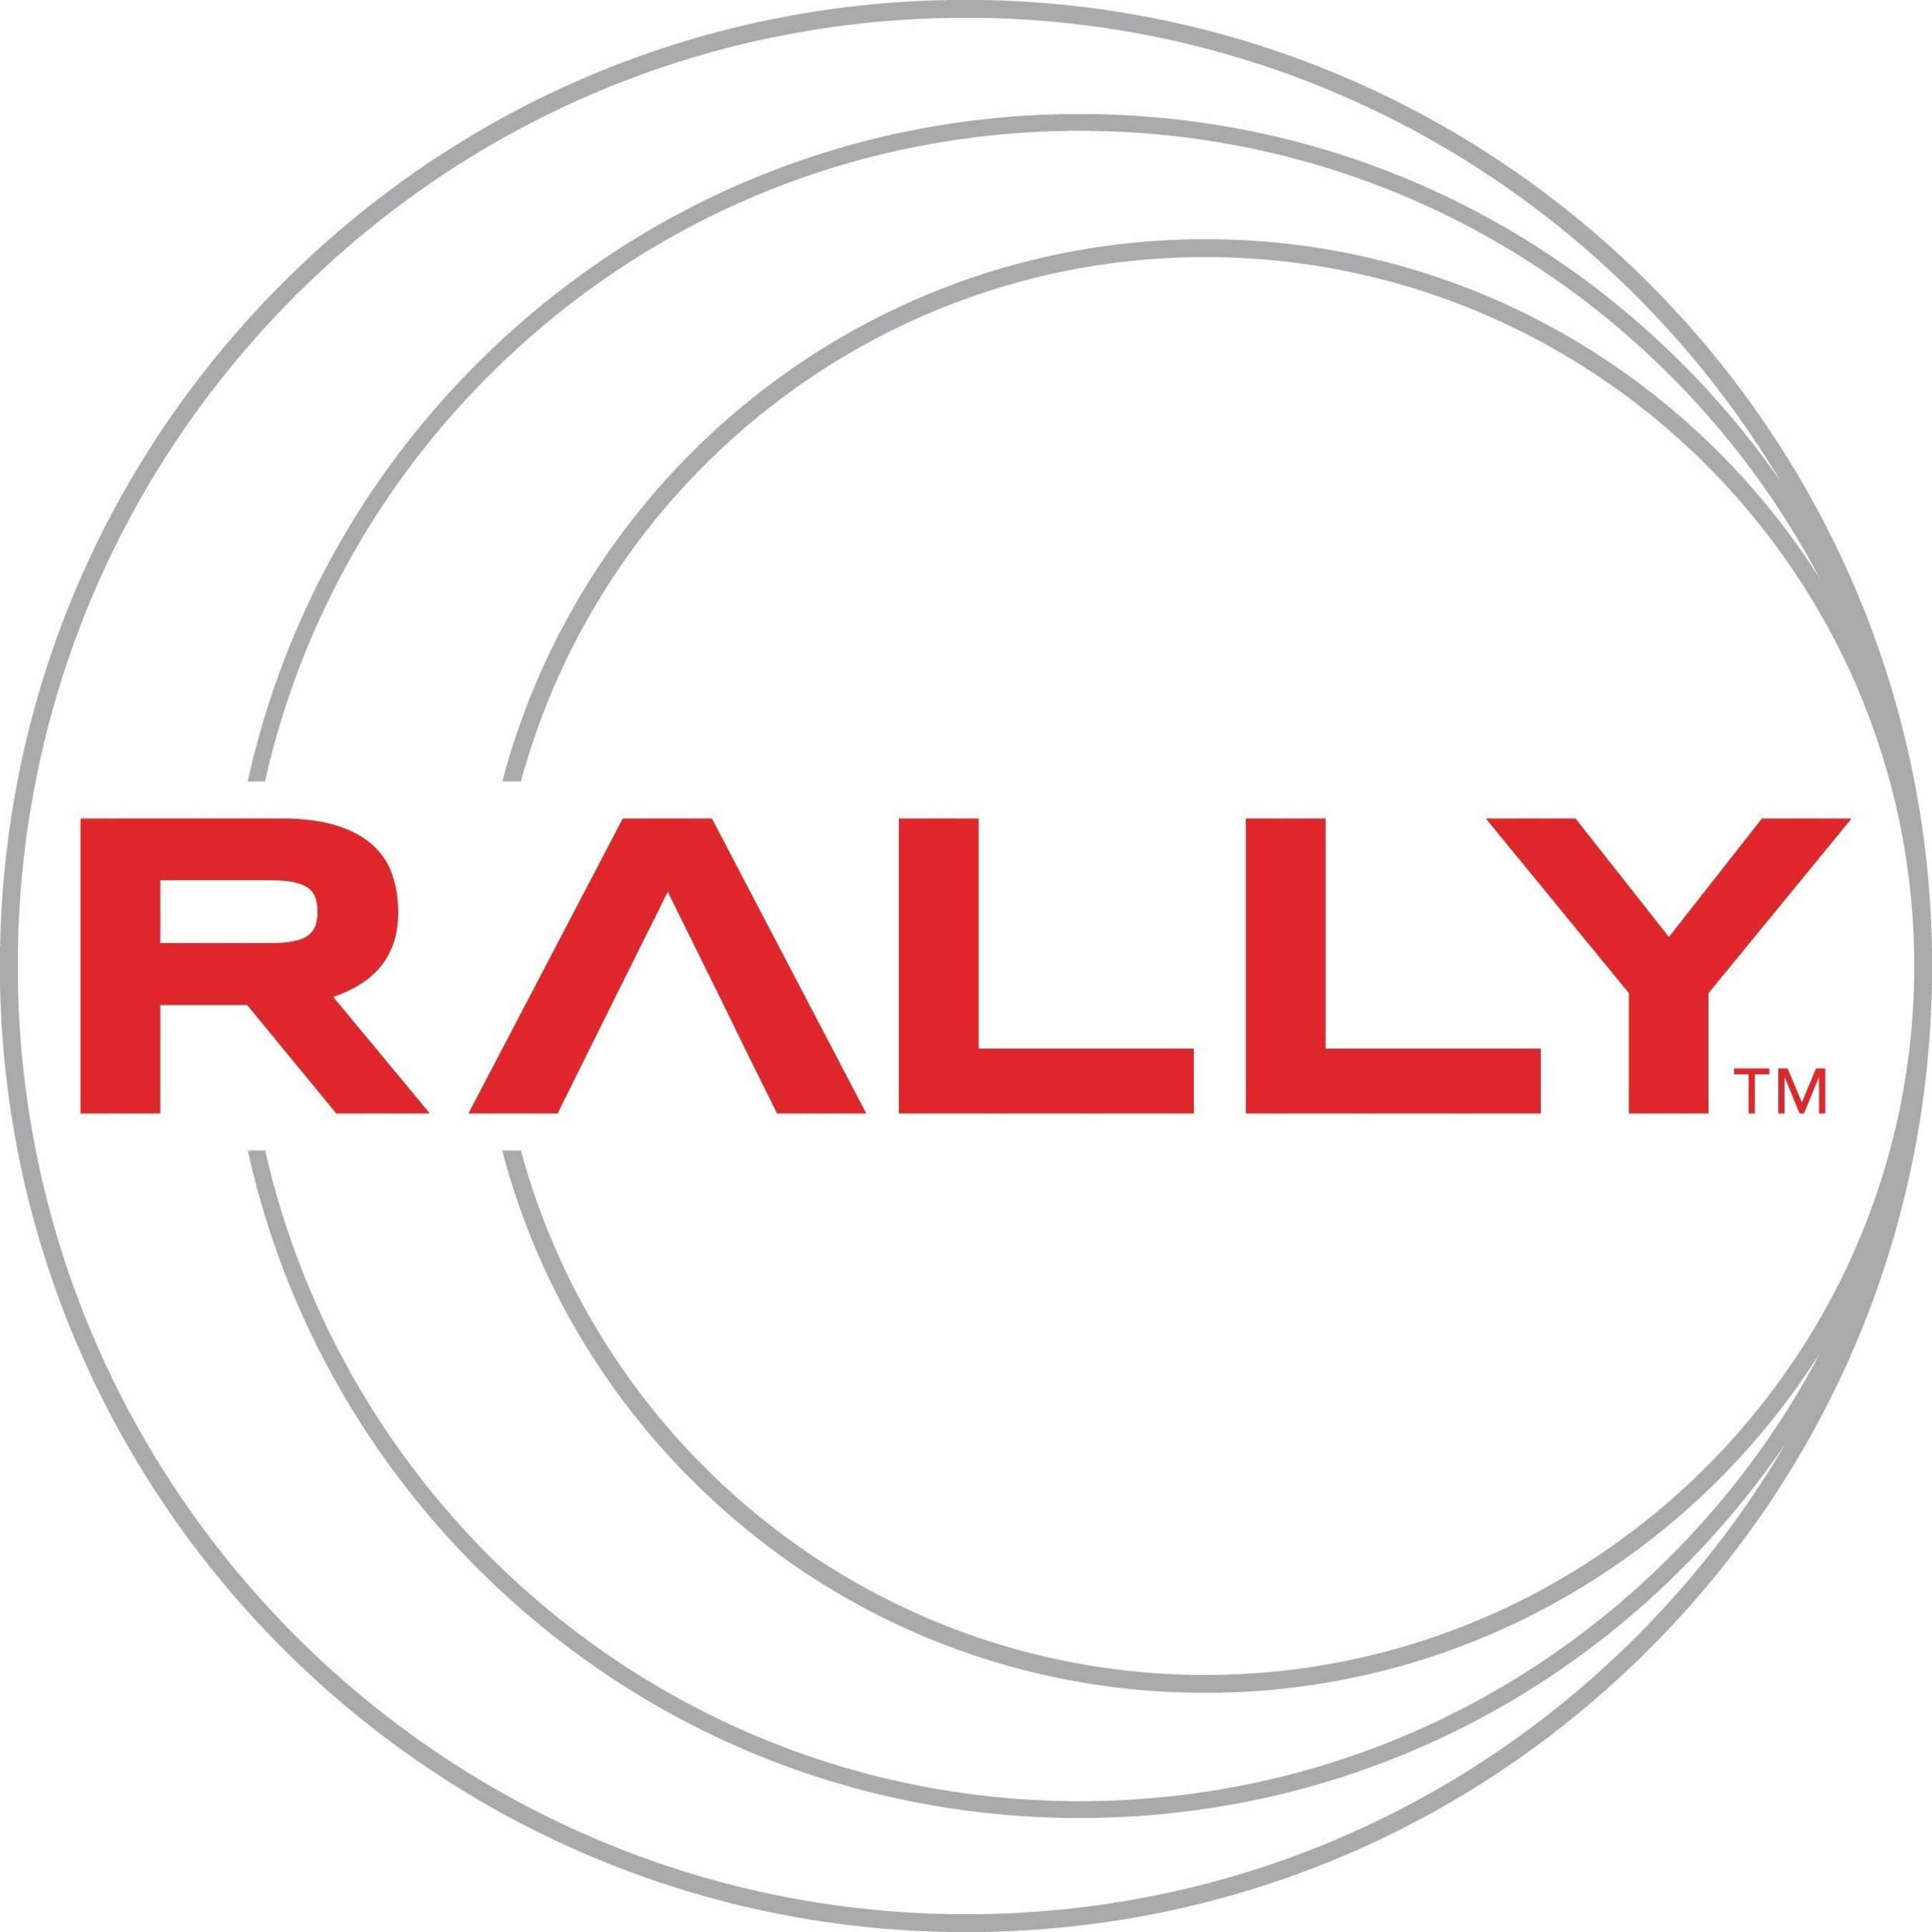 Rally unveils new brand identity